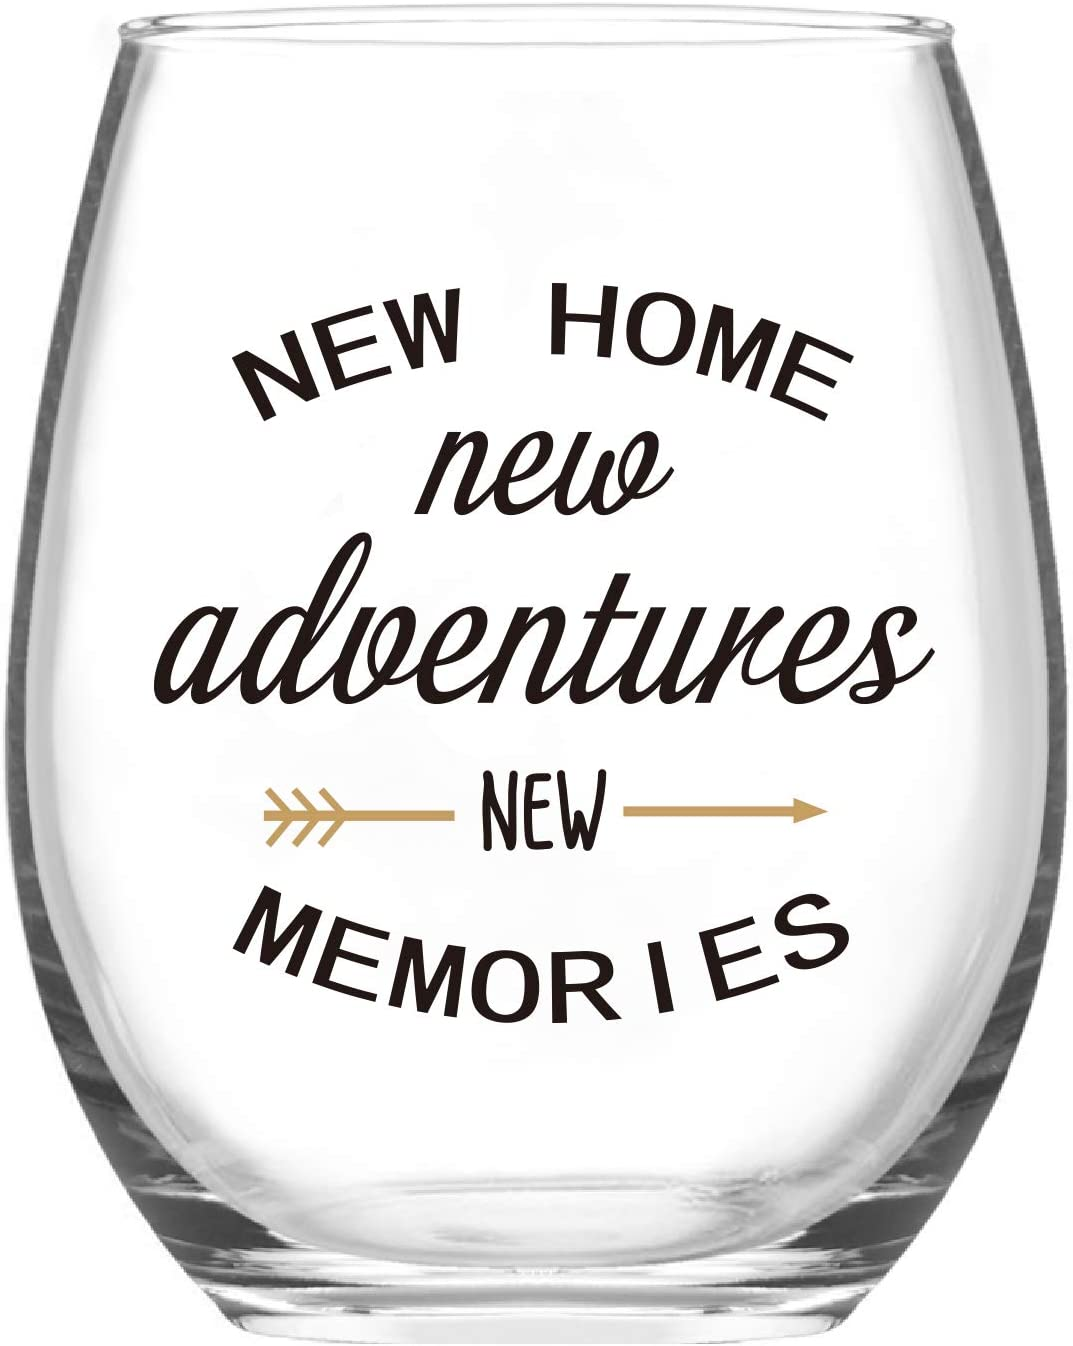 Housewarming Gifts, New Home New Adventures New Memories Stemless Wine Glass for New Home House Owner Friends Couple Women Men Party Christmas, Funny New Home Owner Presents Ideas